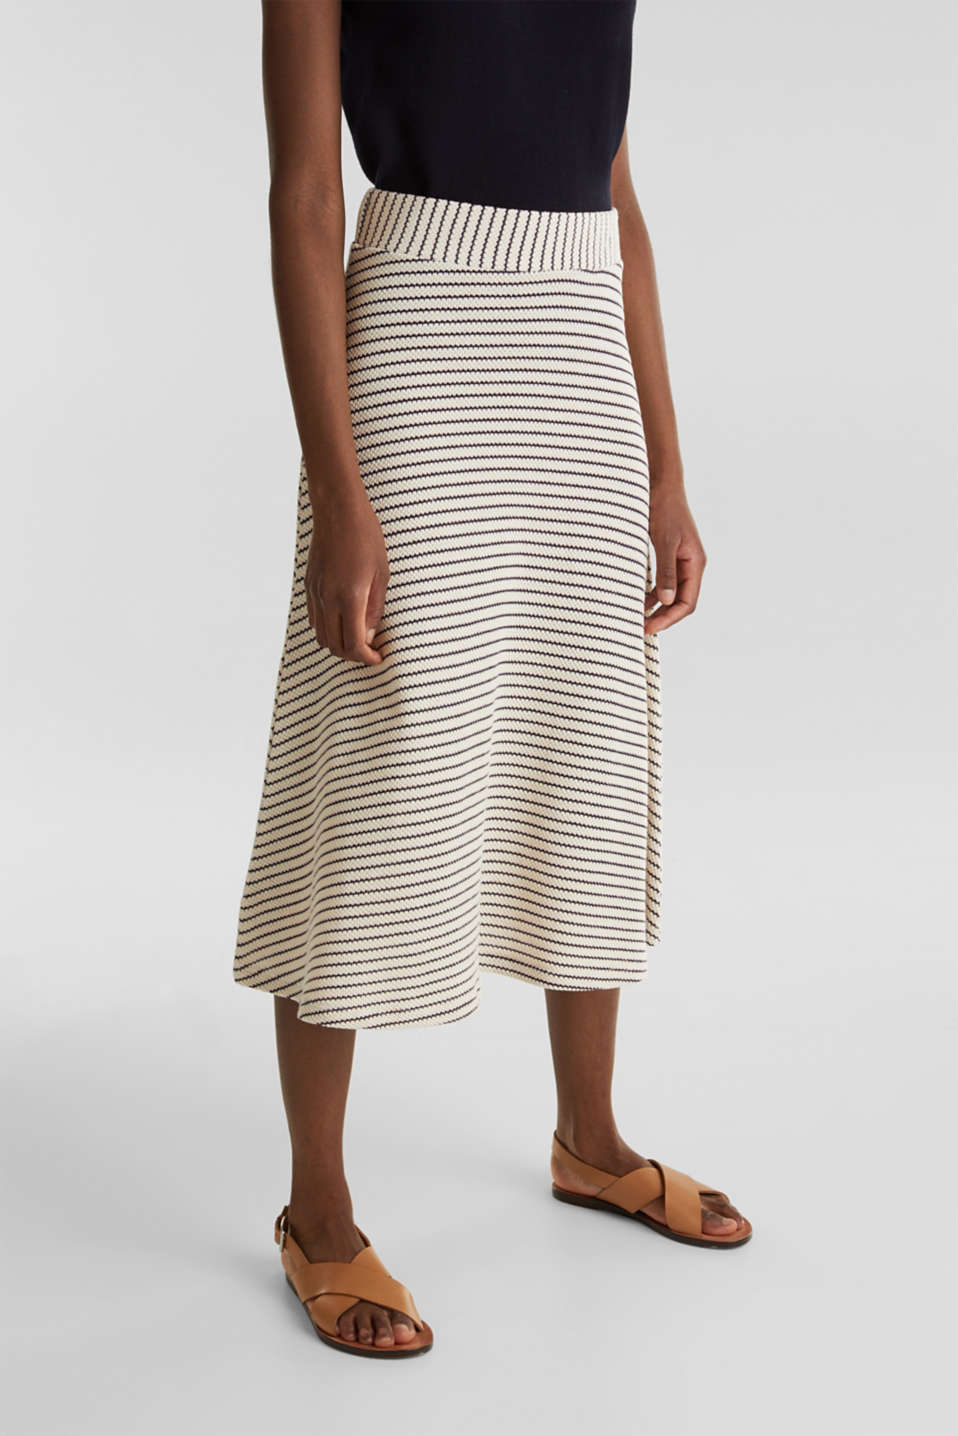 Jersey skirt with textured stripes, SAND, detail image number 5